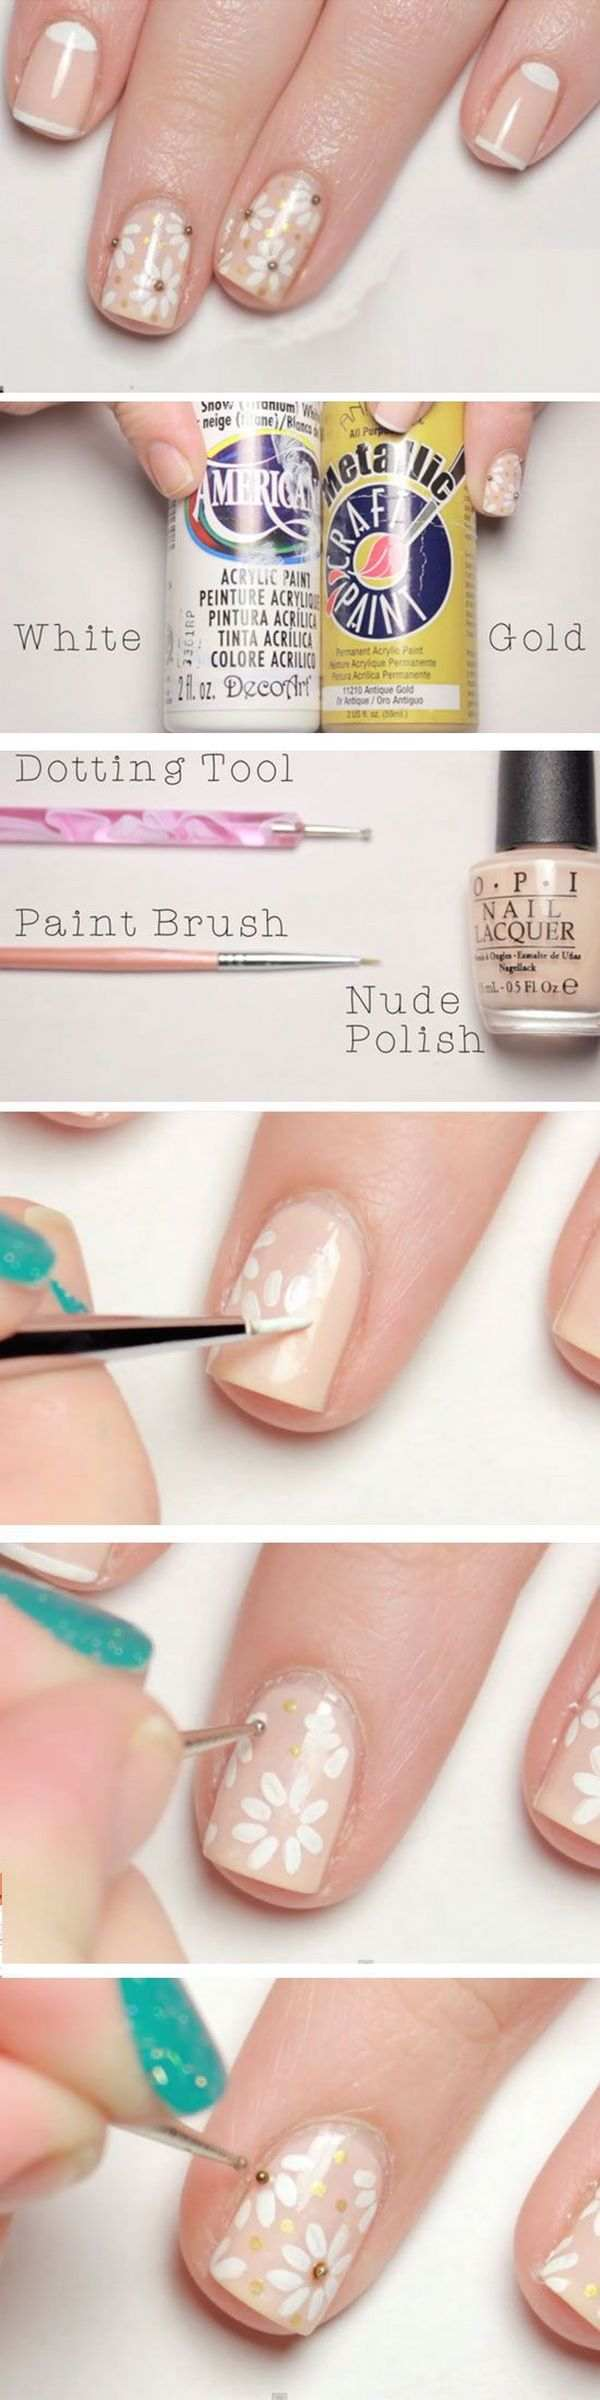 DIY-Nageldesigns einfache Nageldekorationsideen